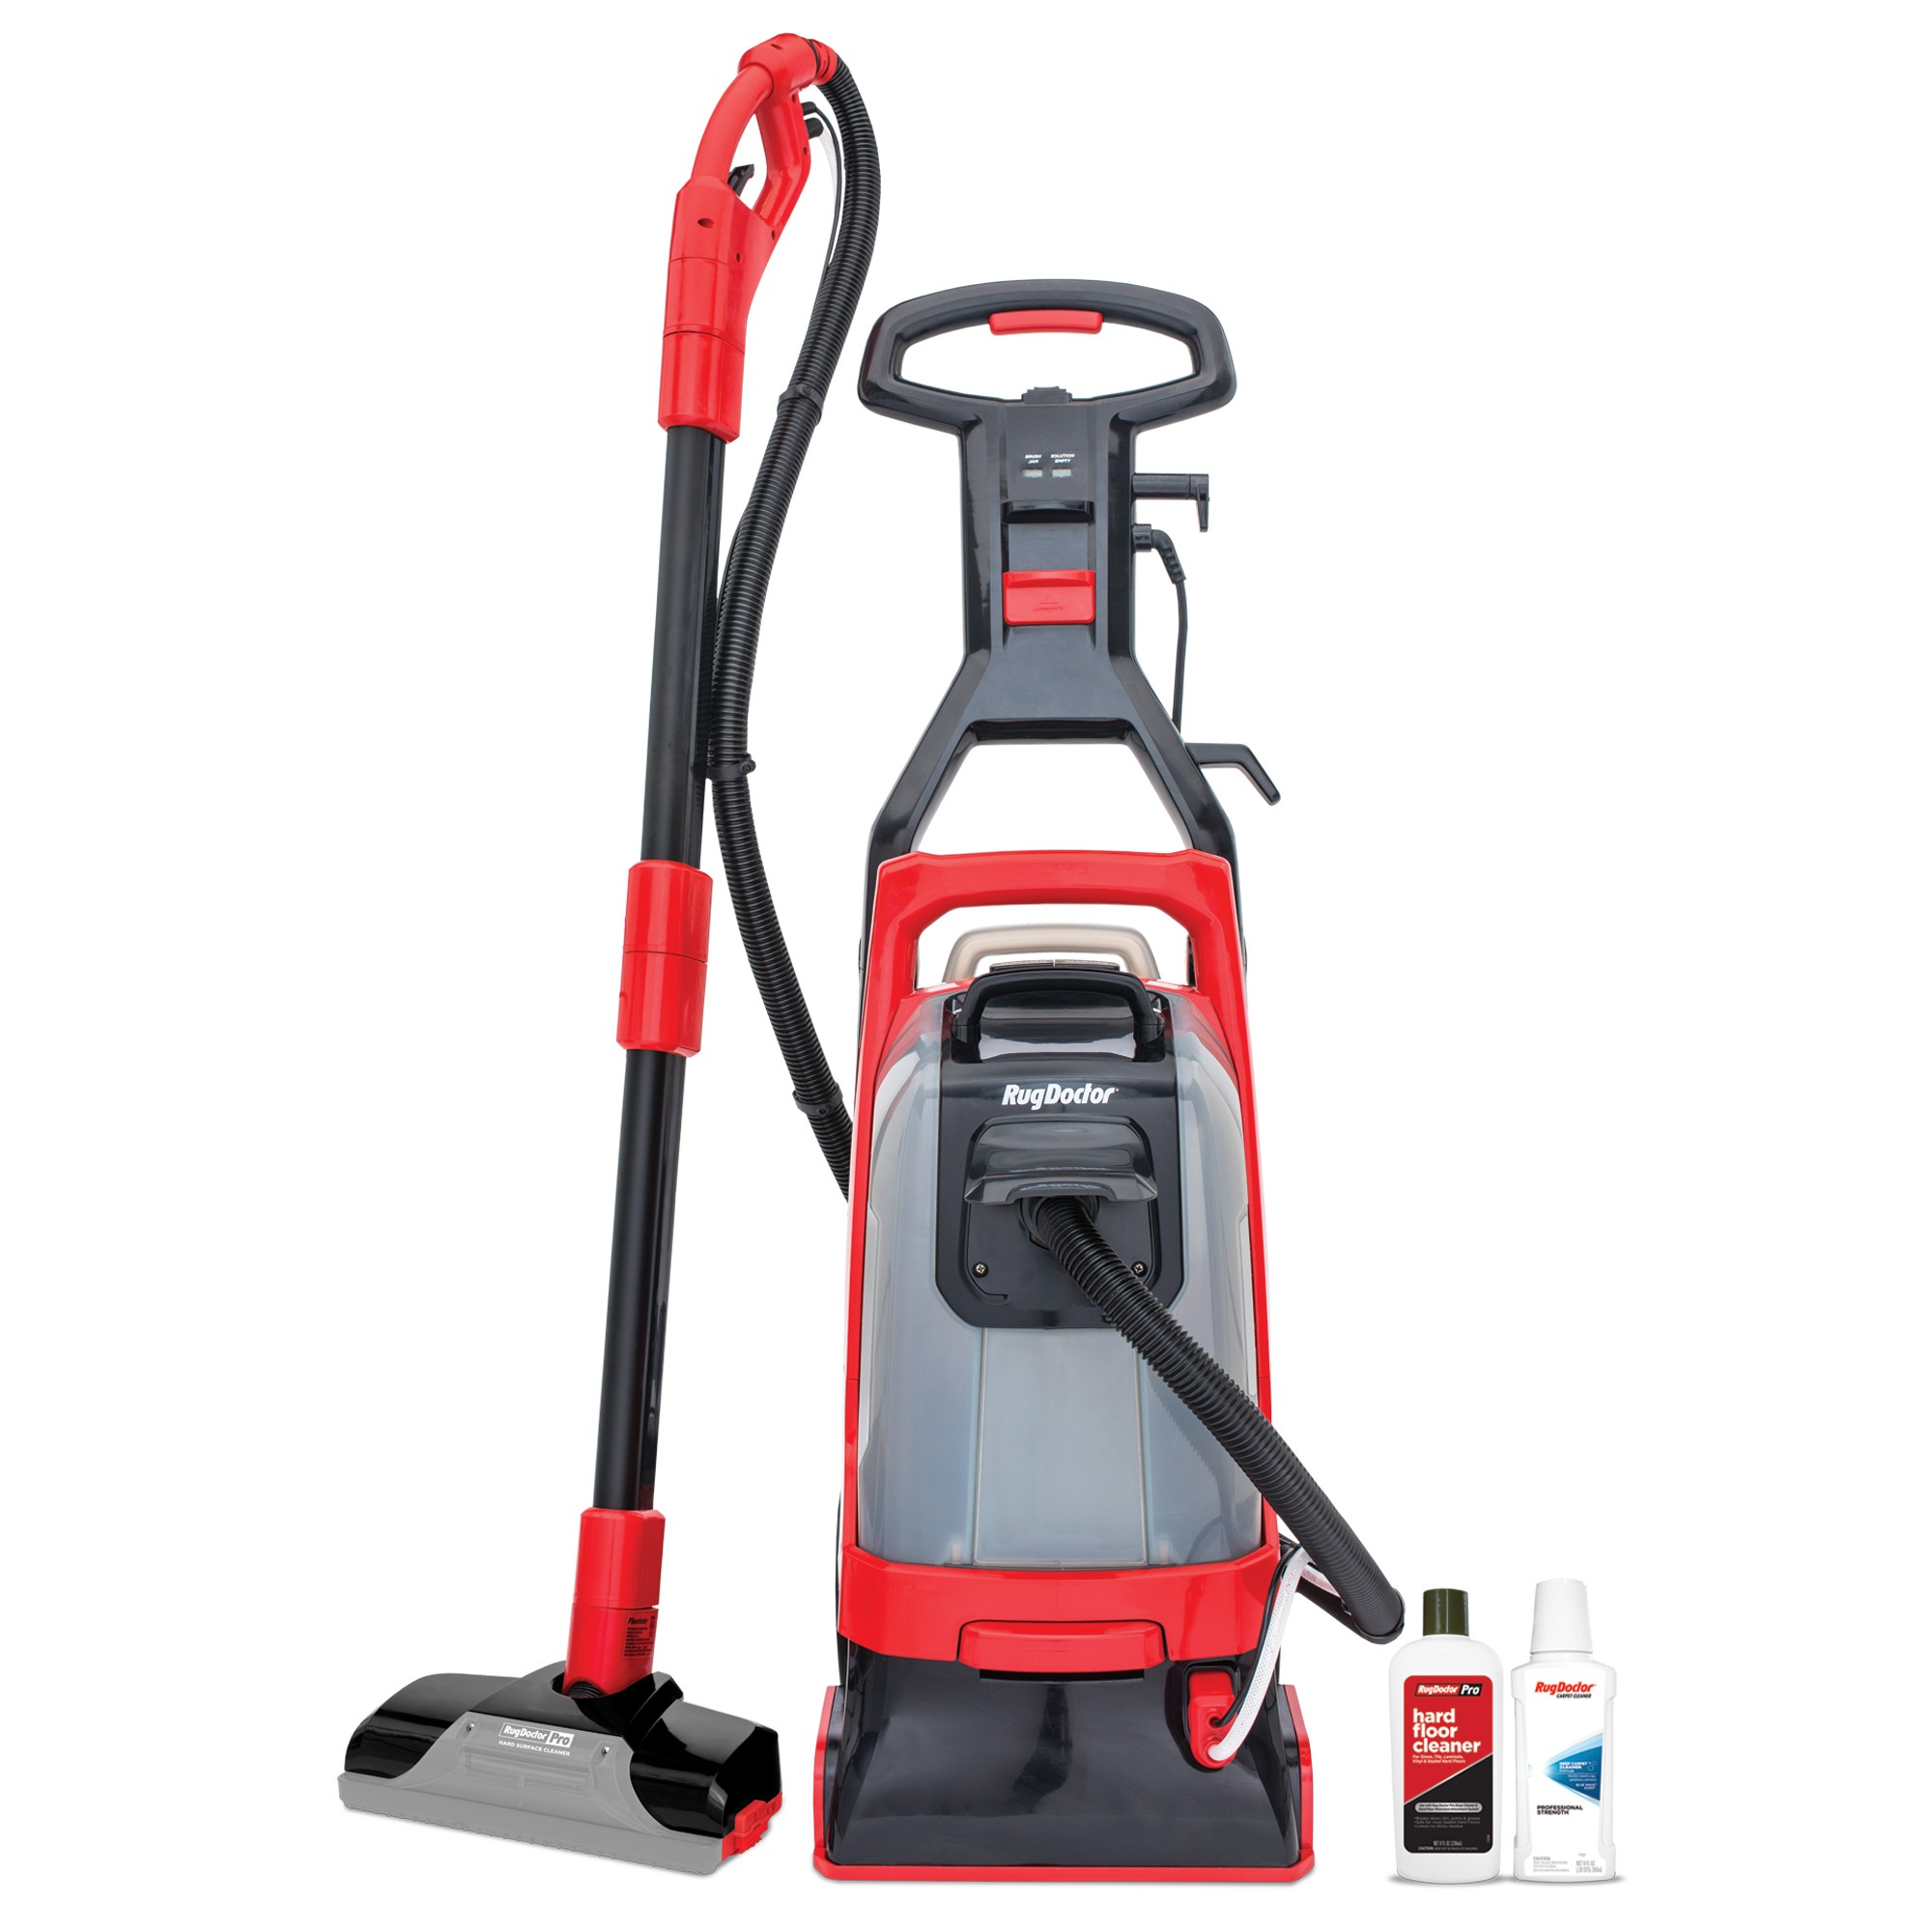 Rug Doctor Pro Deep Hard Floor Cleaner with Hose and Extender for Pro Deep Carpet Cleaner